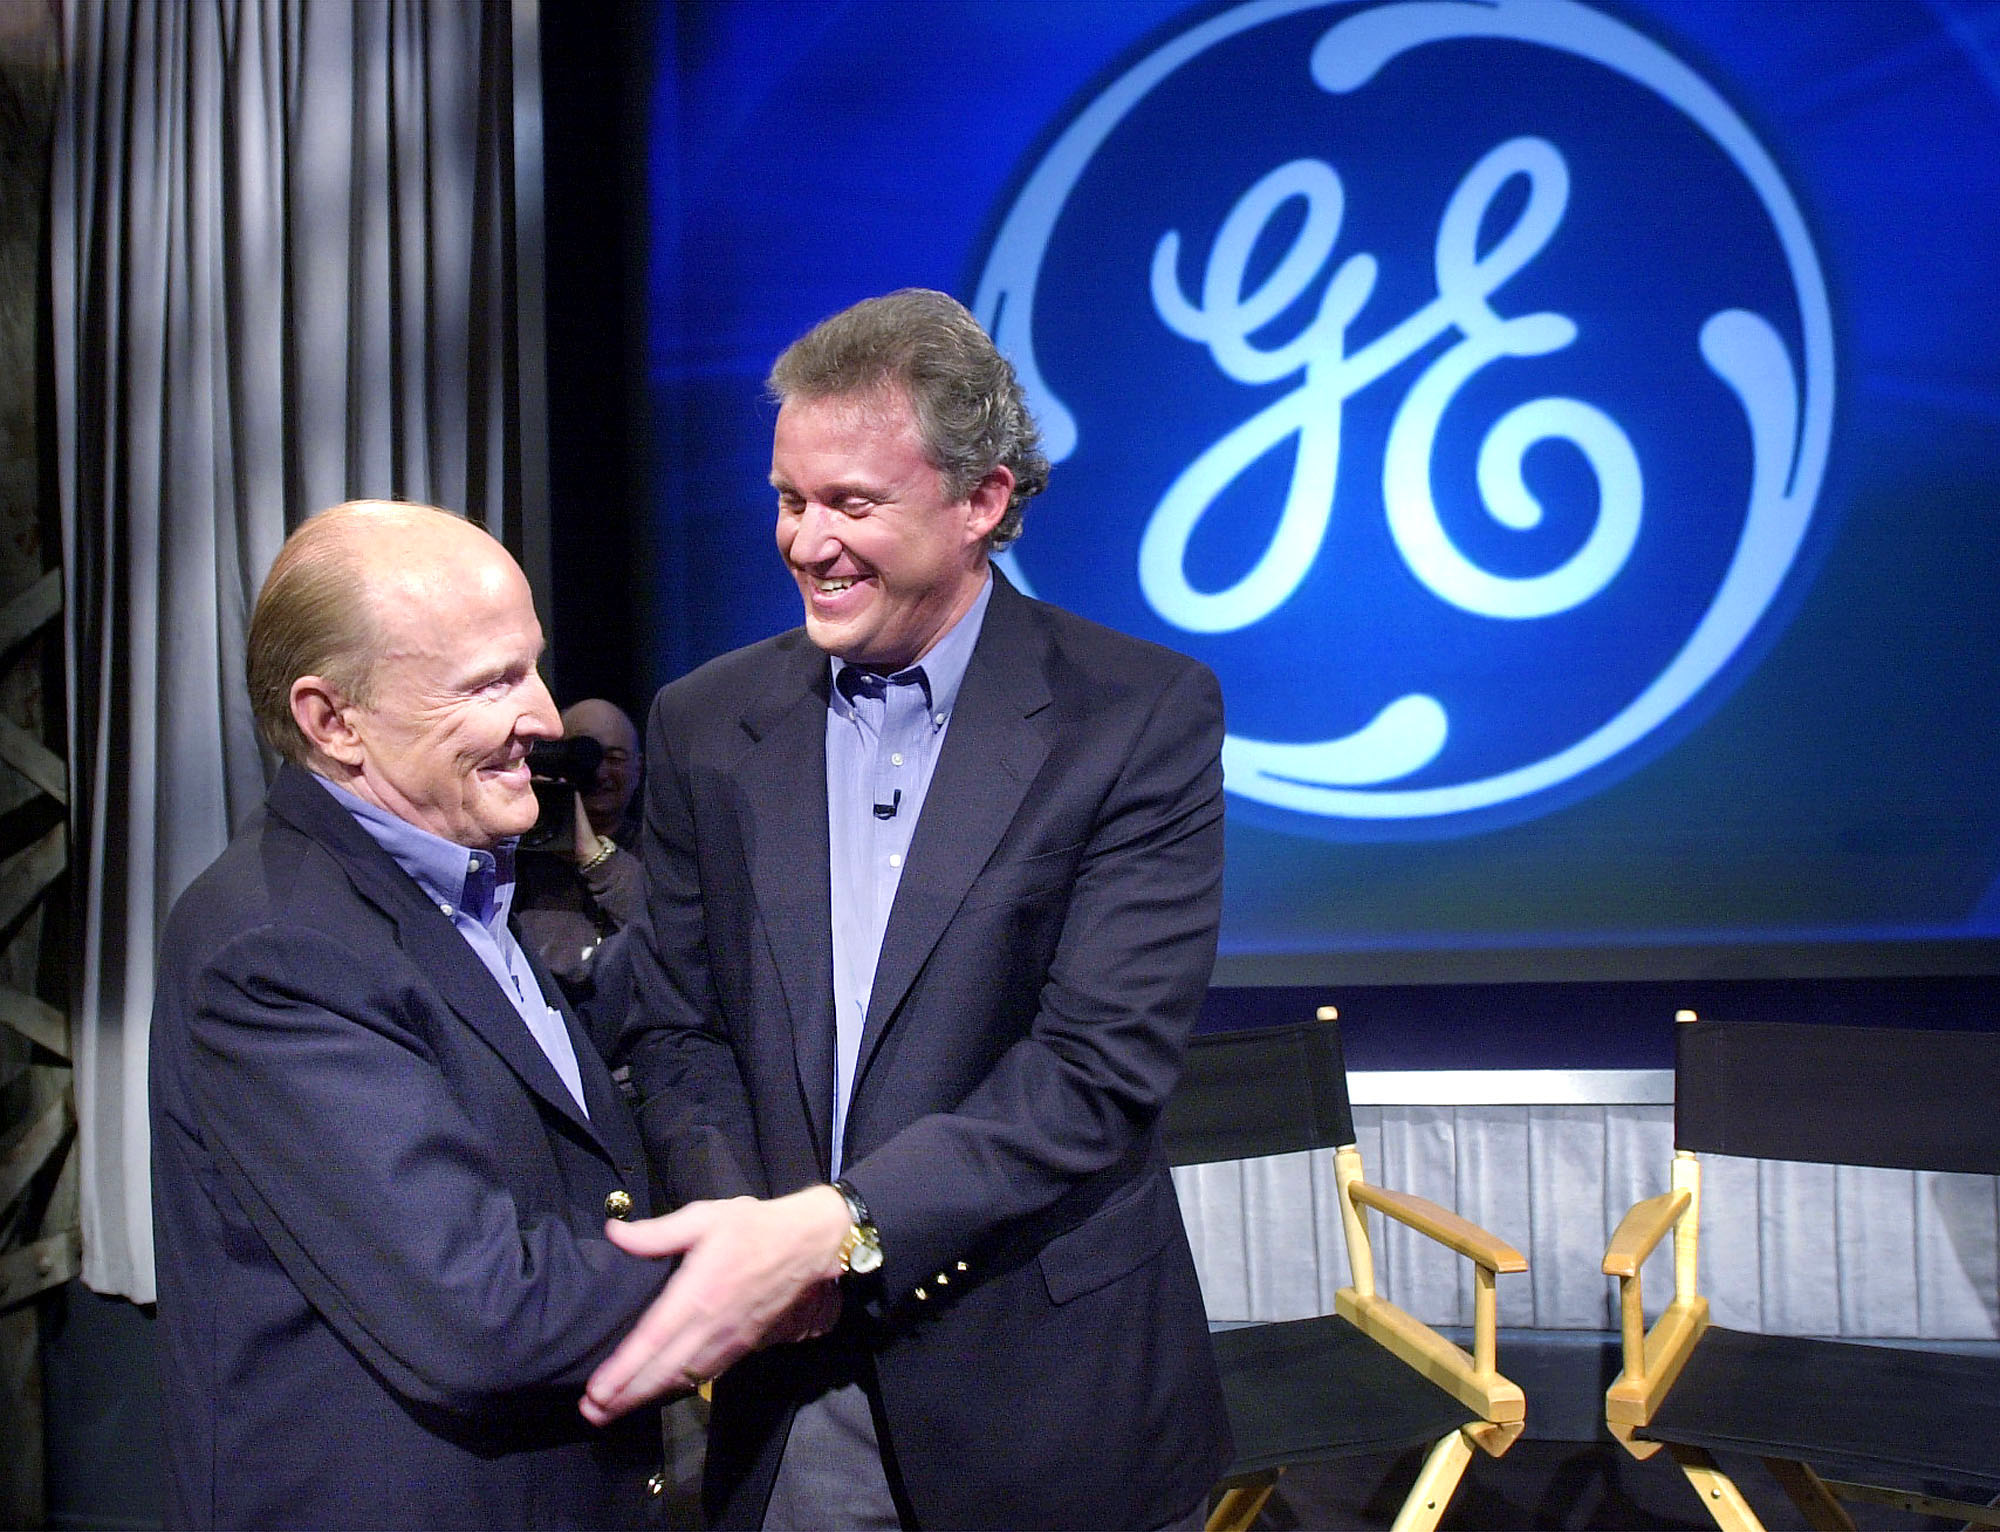 General Electric News Conference